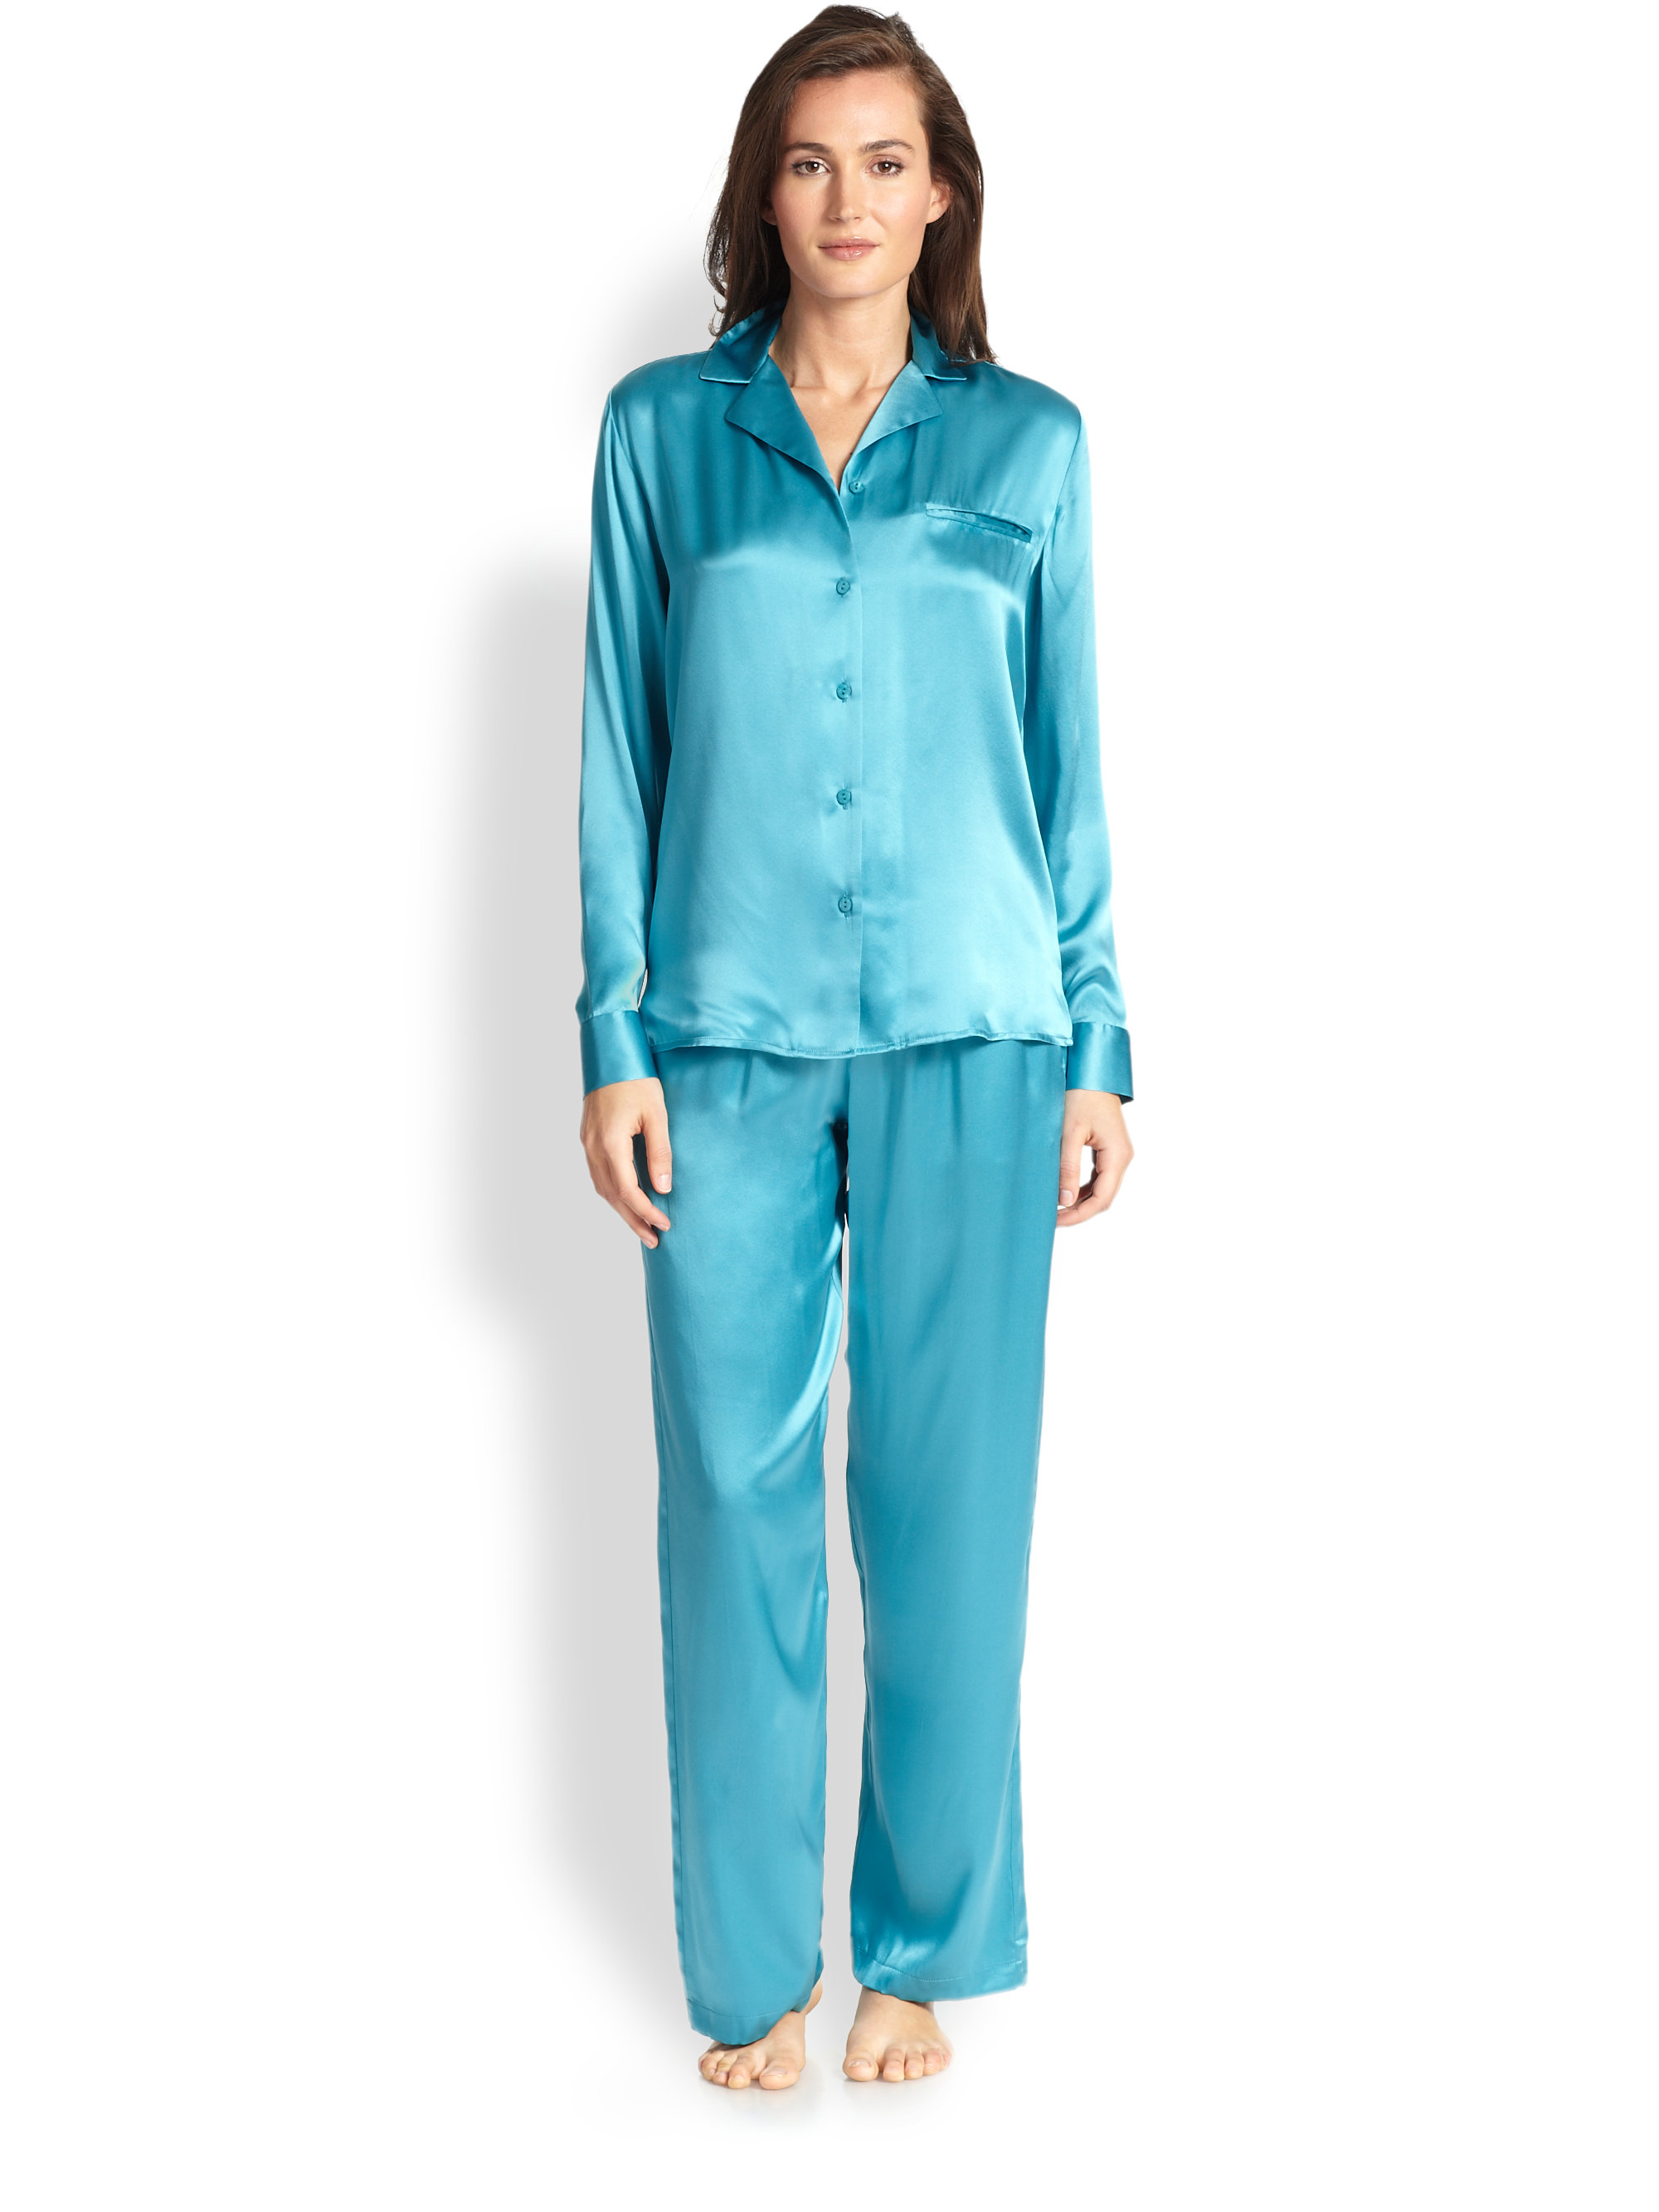 Find great deals on eBay for blue satin pajamas. Shop with confidence.